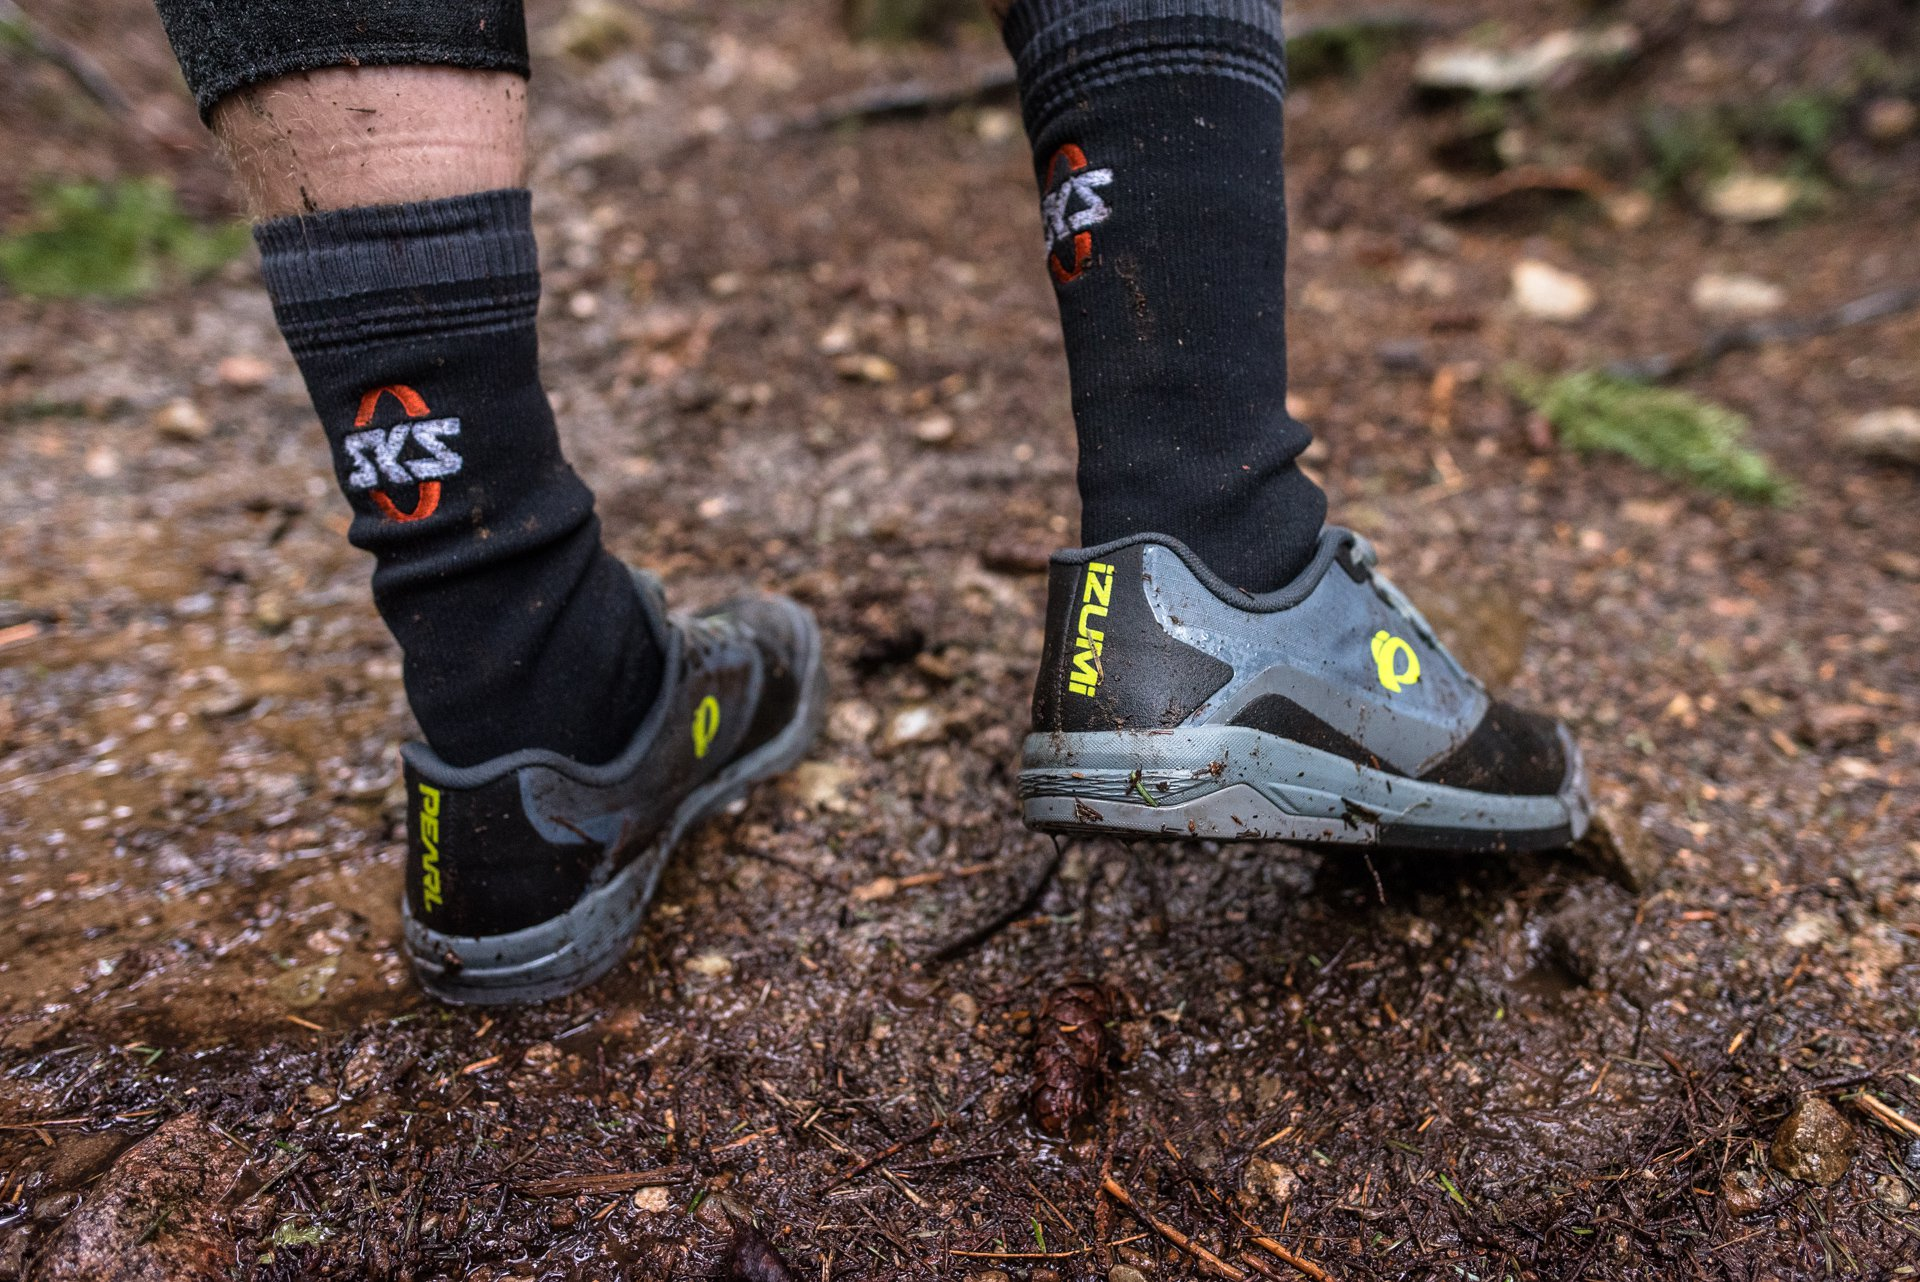 nsmb_2018_gearreview_kona_satori_PI_shoes-4939.jpg